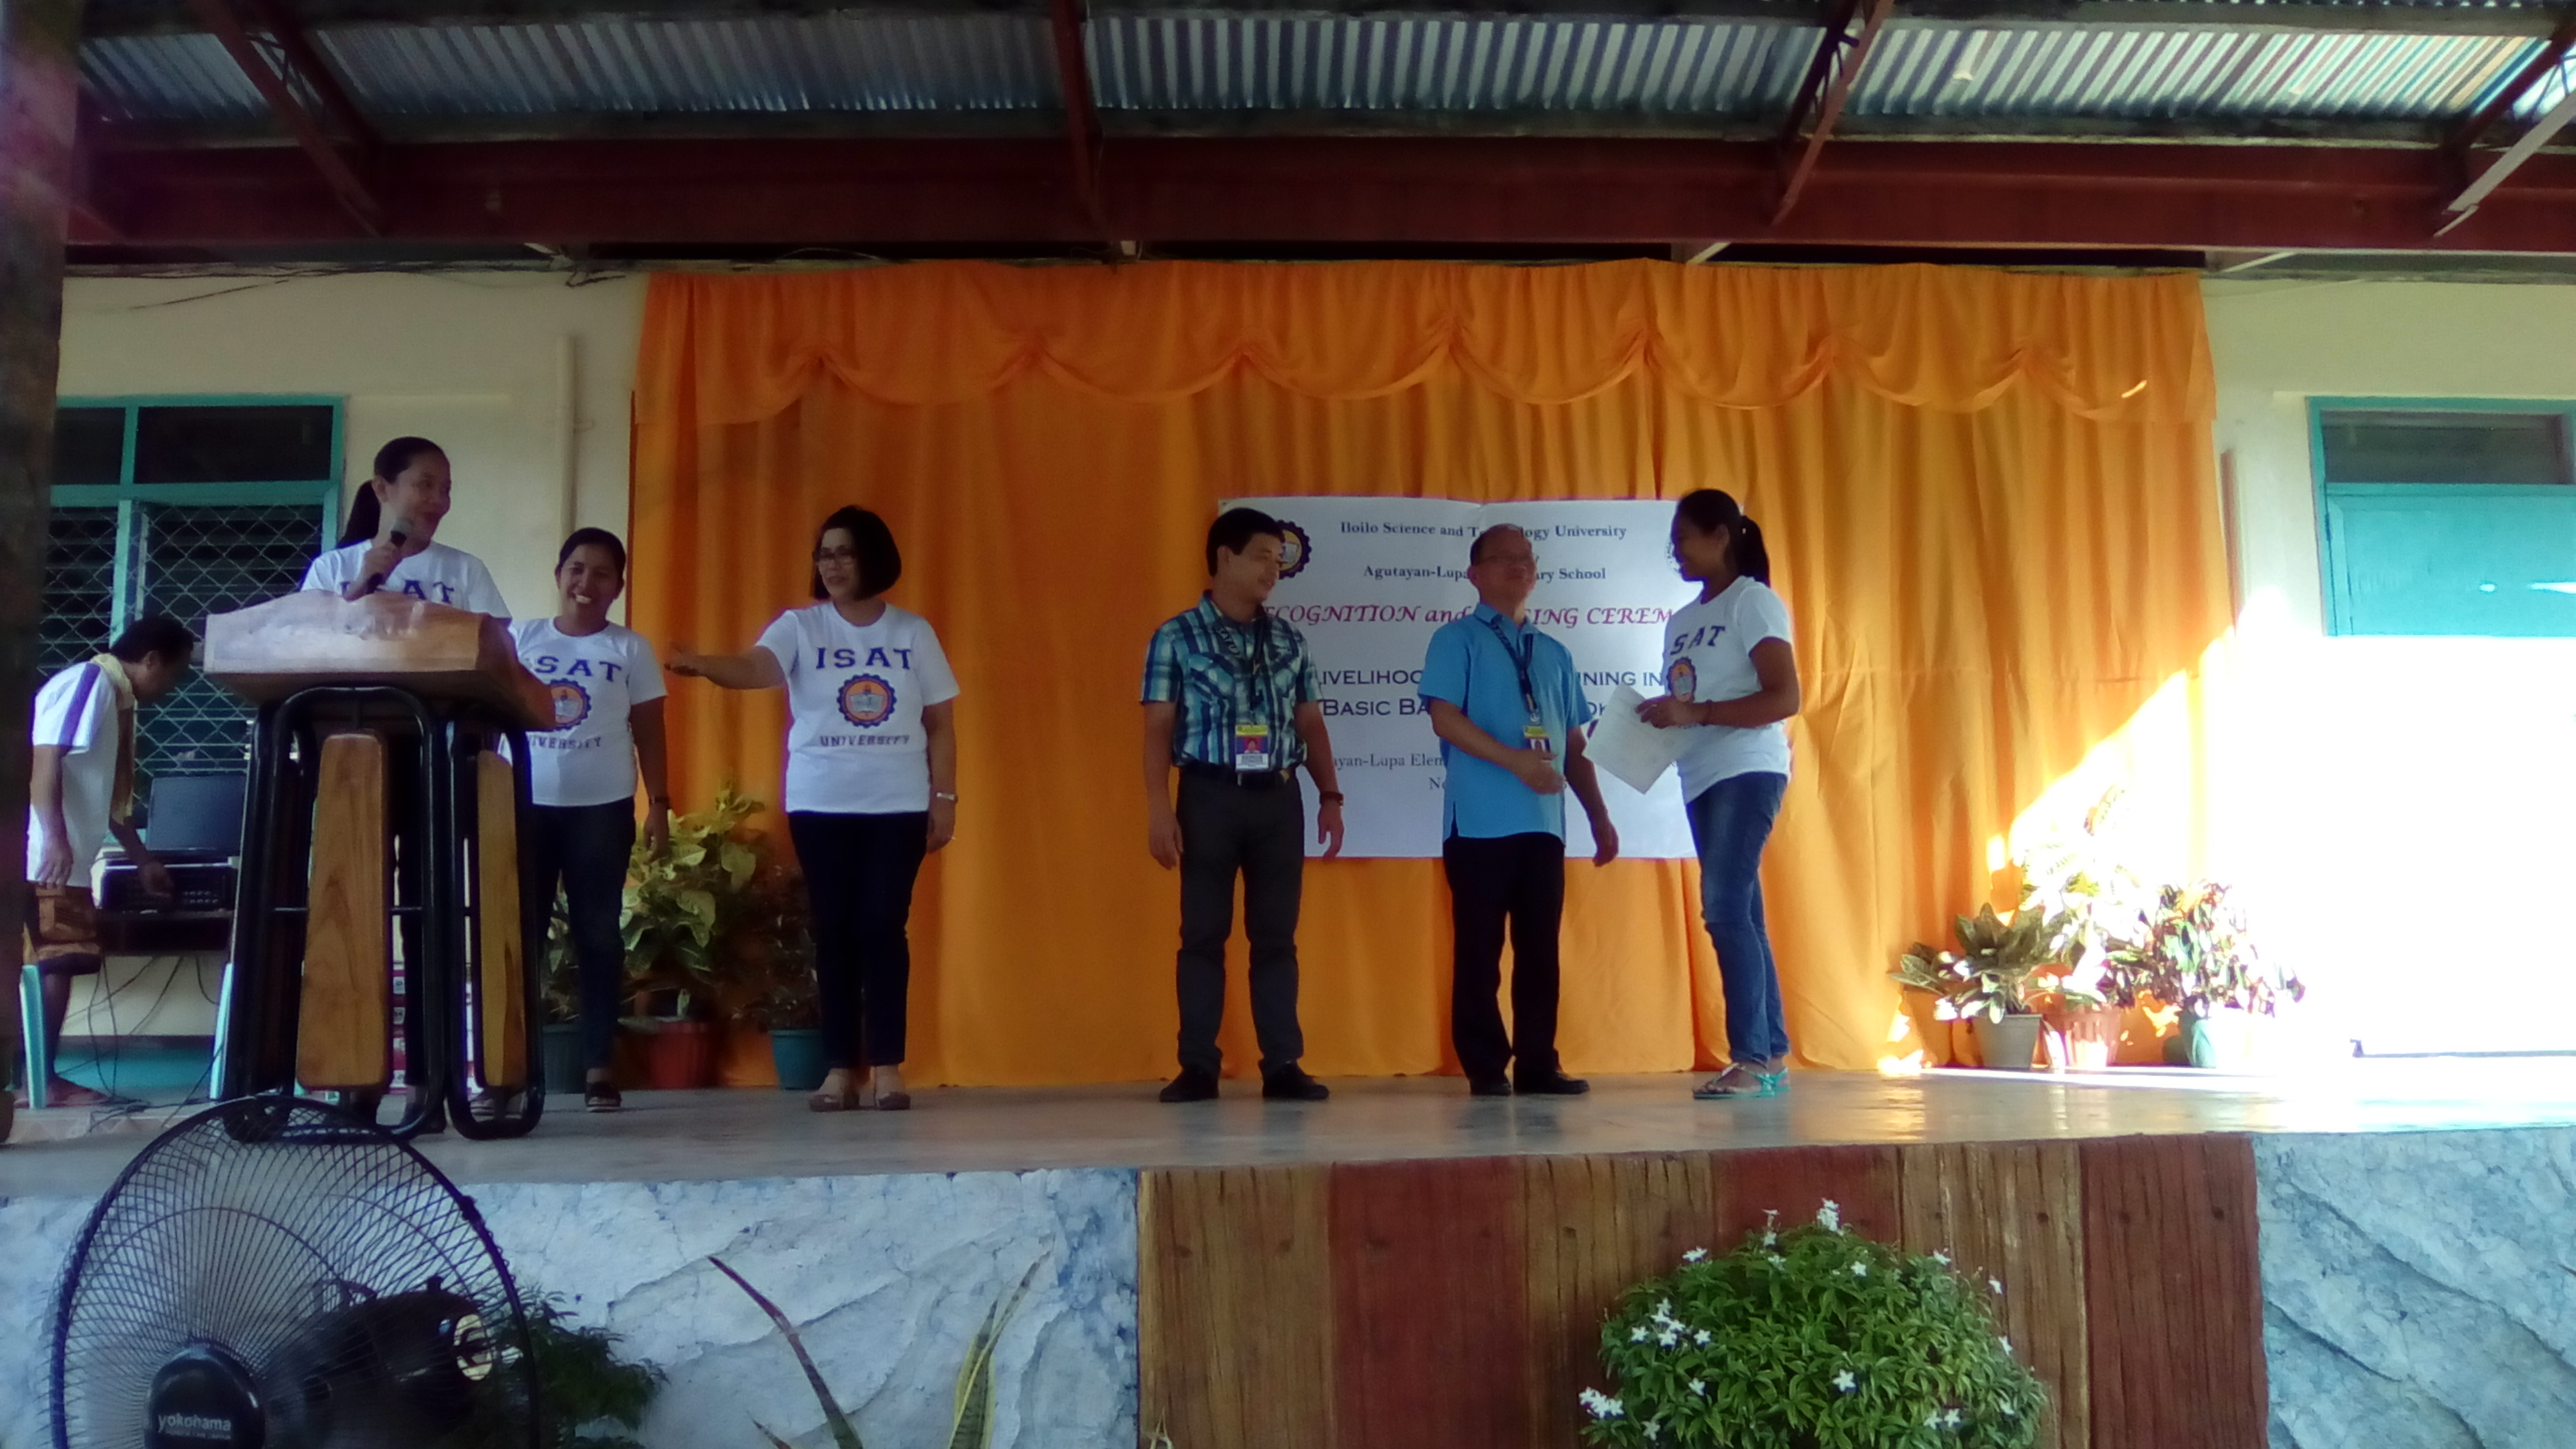 The participants receive the certificate during the culminating activity at Agutayan-Lupa Elementary School after completing the 10-day skills training.